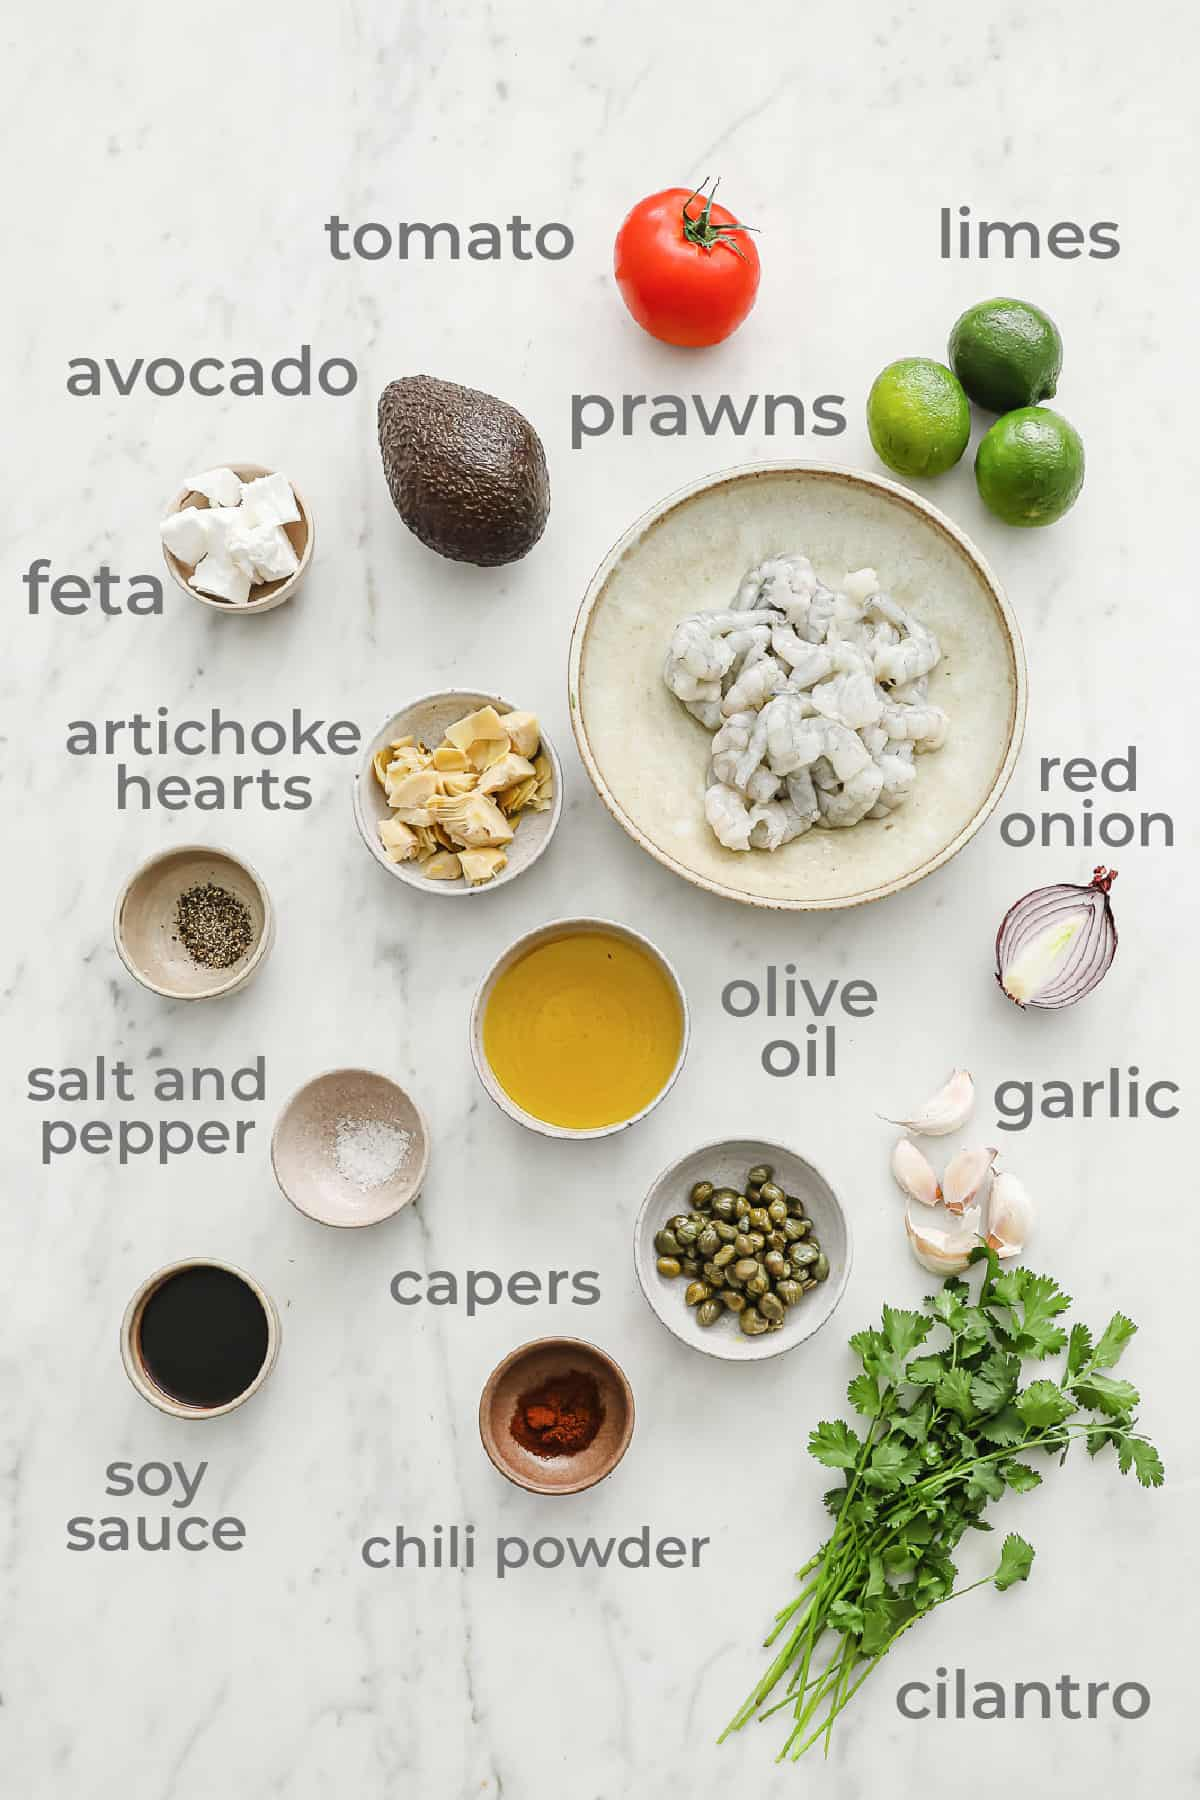 Ingredients laid out to make grilled prawns with an avocado feta salsa